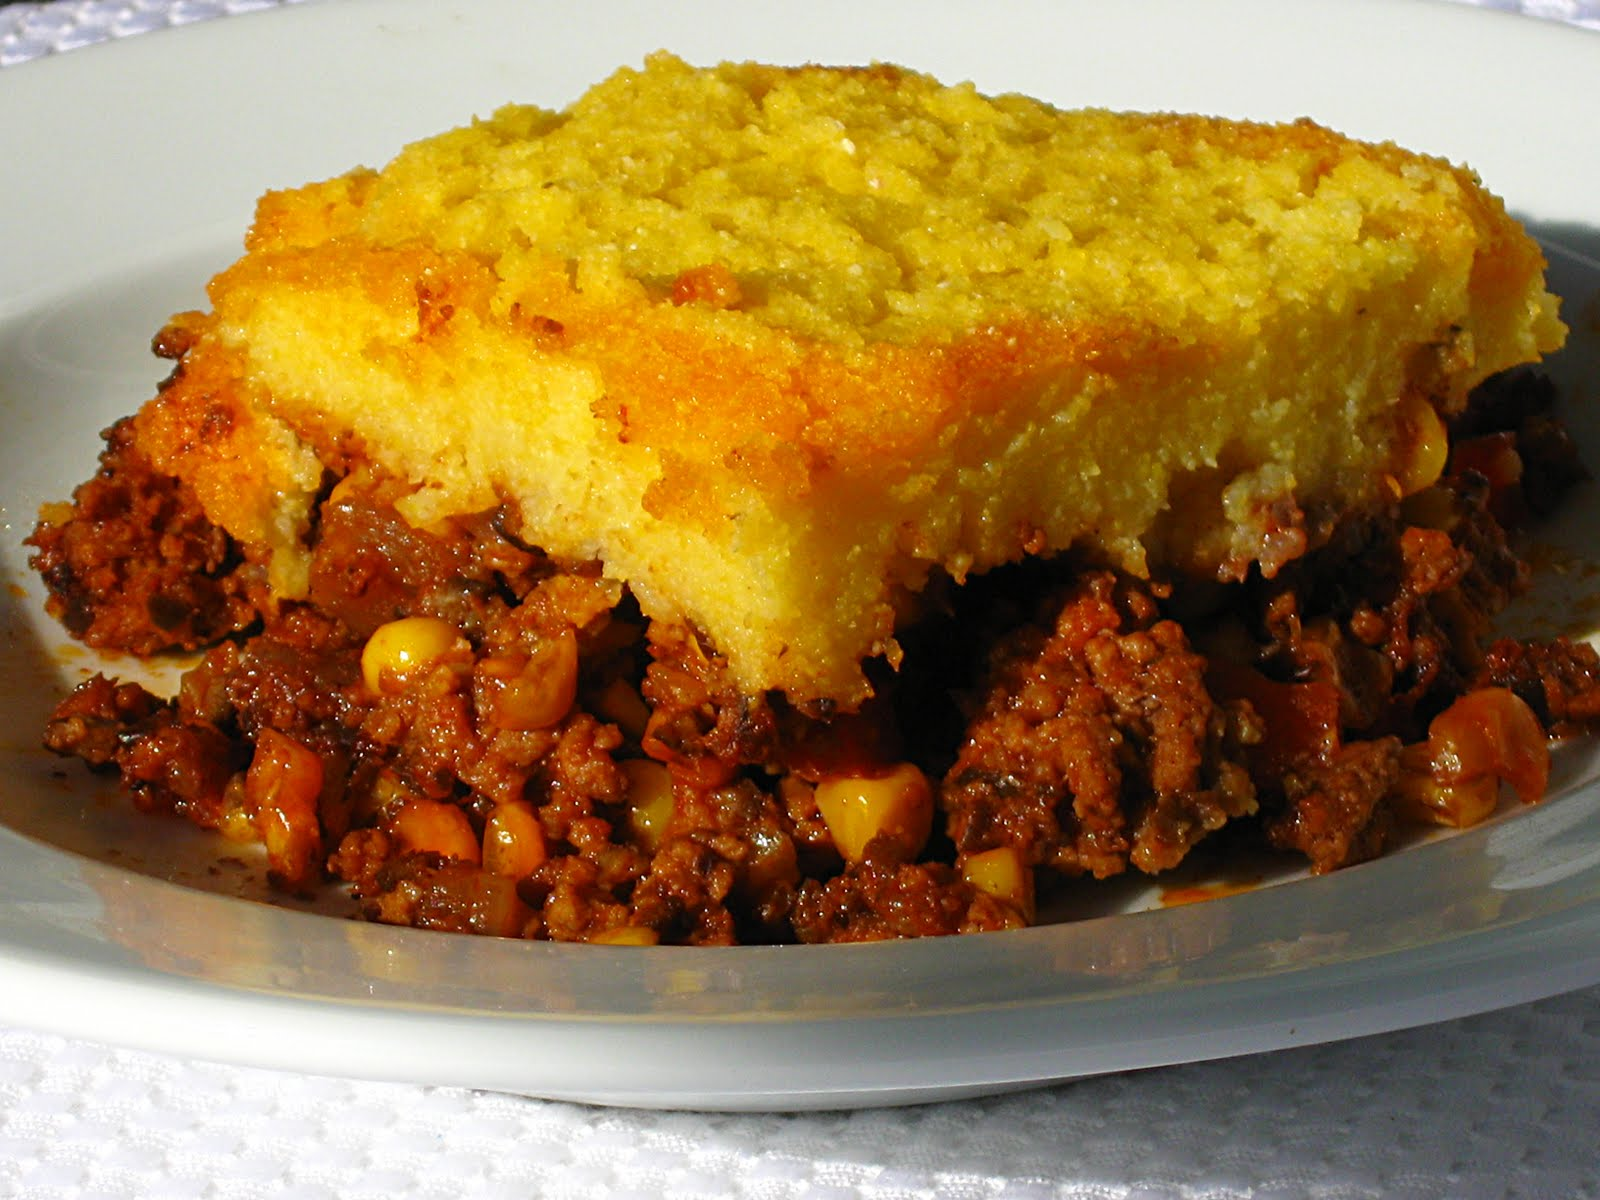 ... tamale mini tamale pie s tamale pie casserole tamale pie with cornmeal